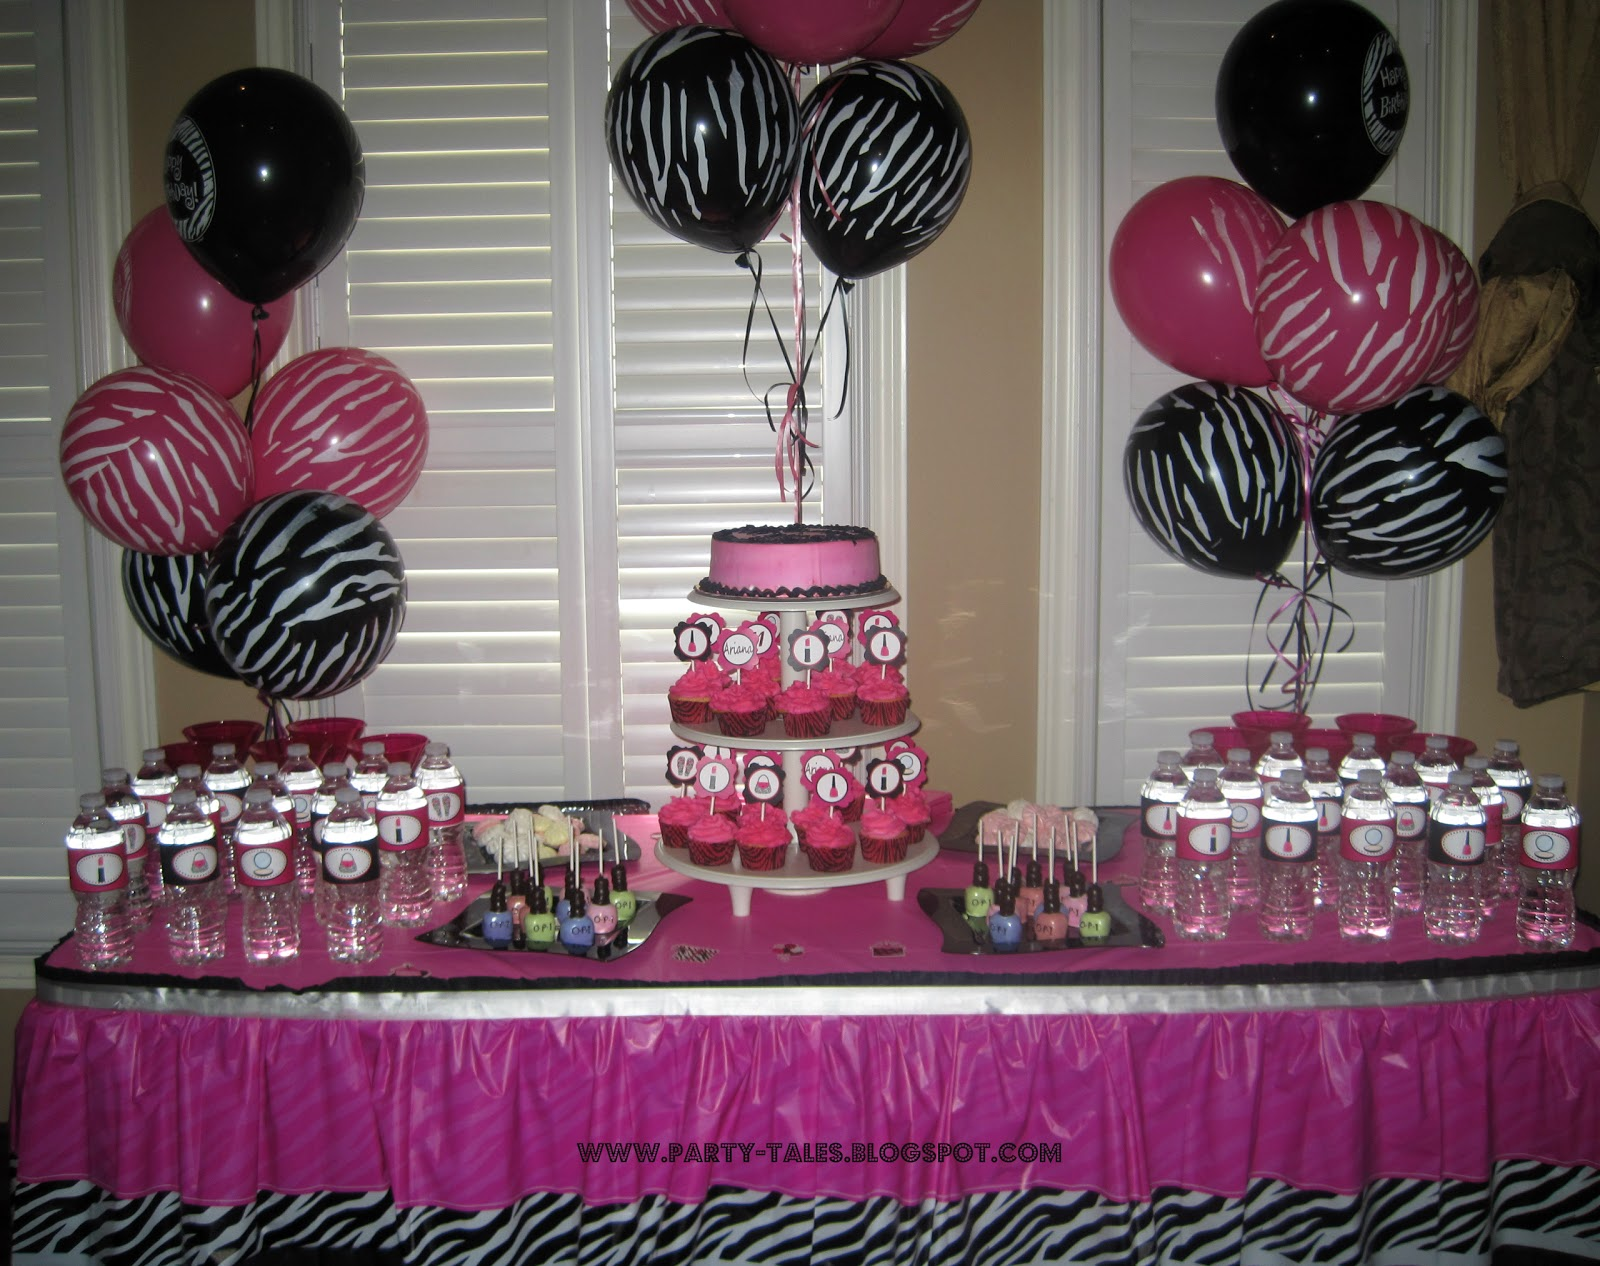 Amazing Hot Pink Zebra Print Birthday Party Supplies 1600 x 1266 · 356 kB · jpeg